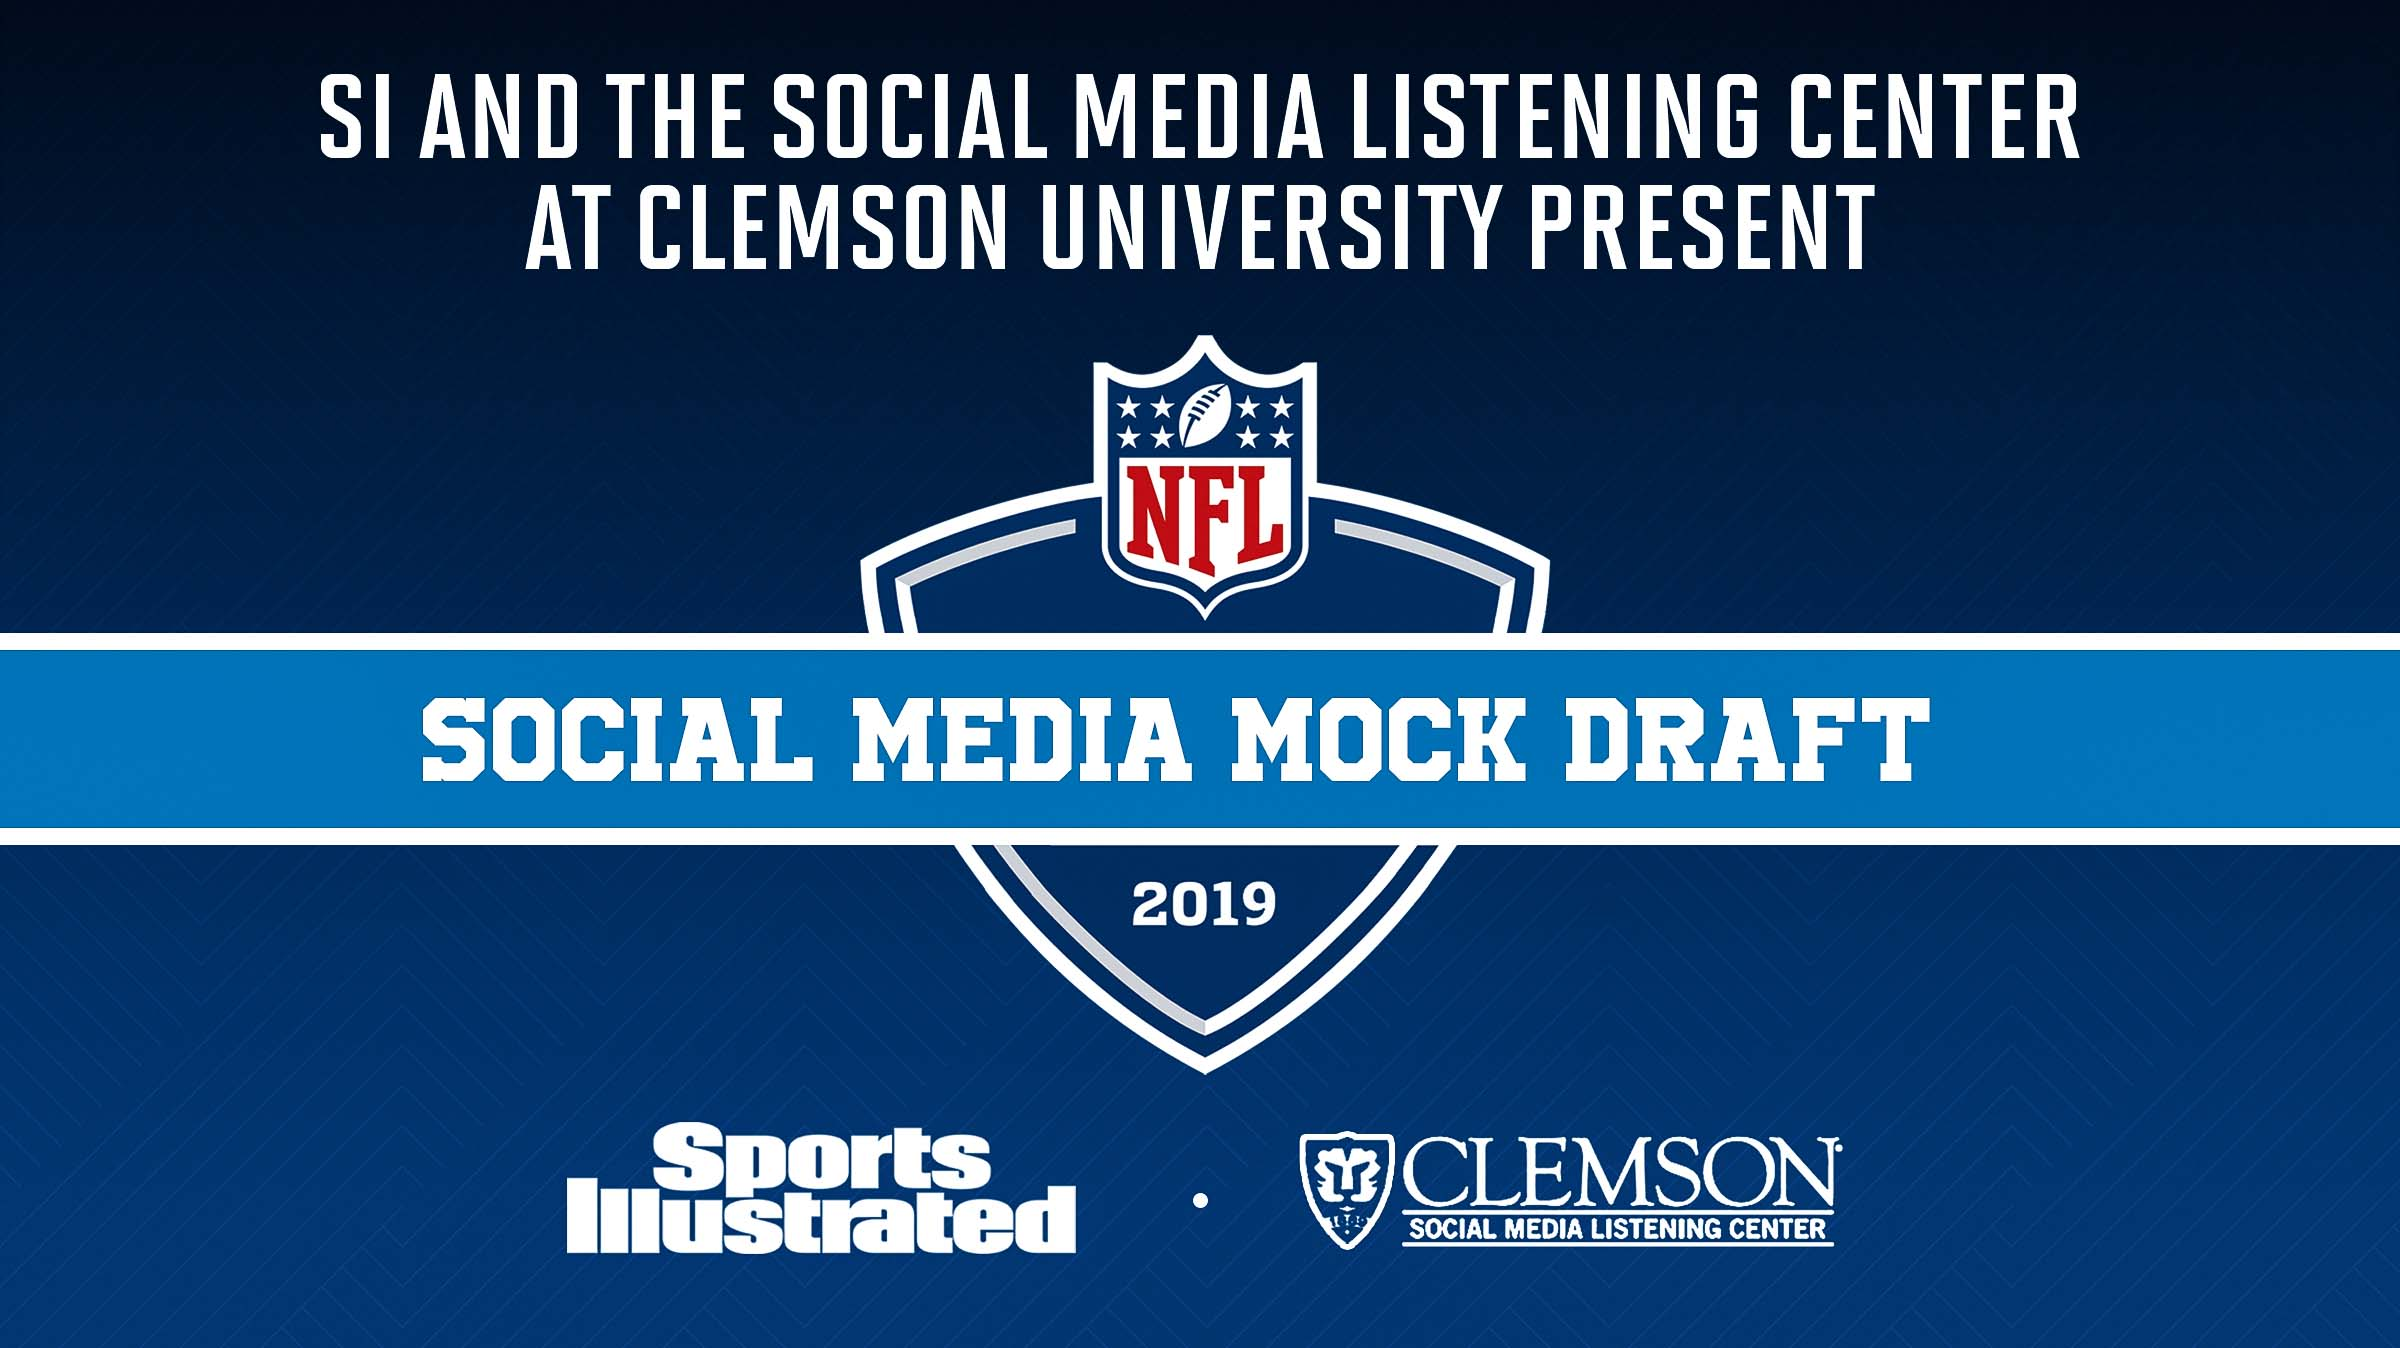 Nfl-mock-draft-clemson-university-social-media